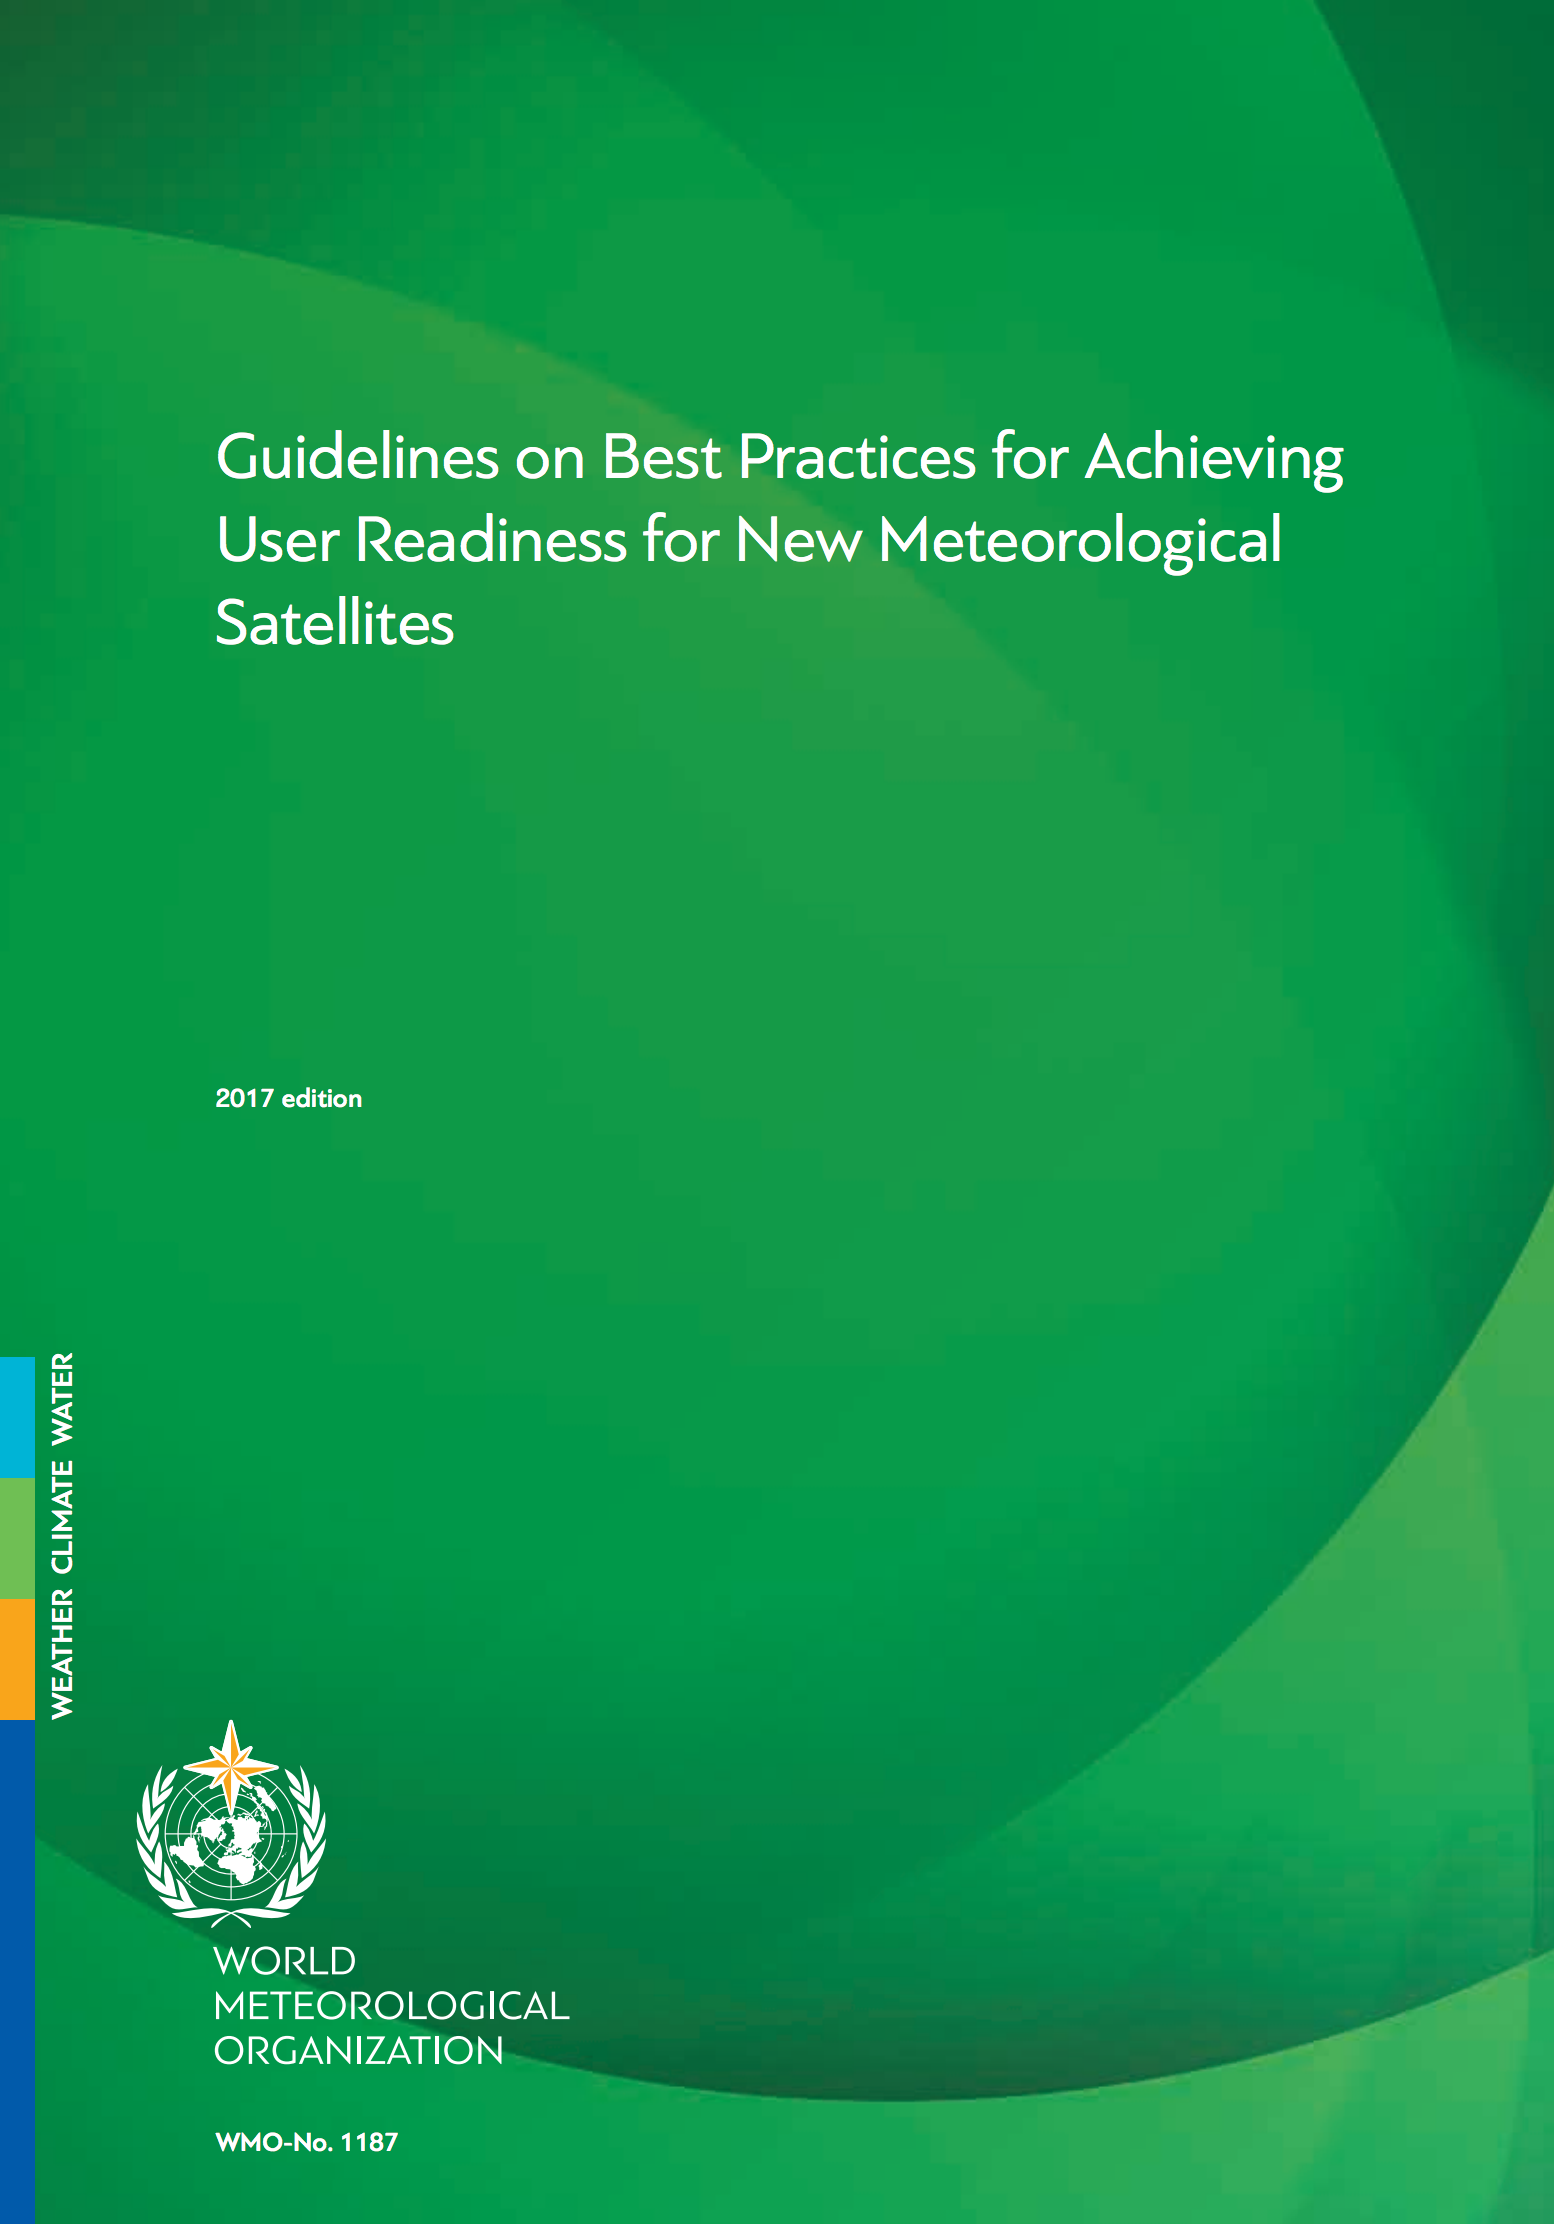 Guidelines for satellite users